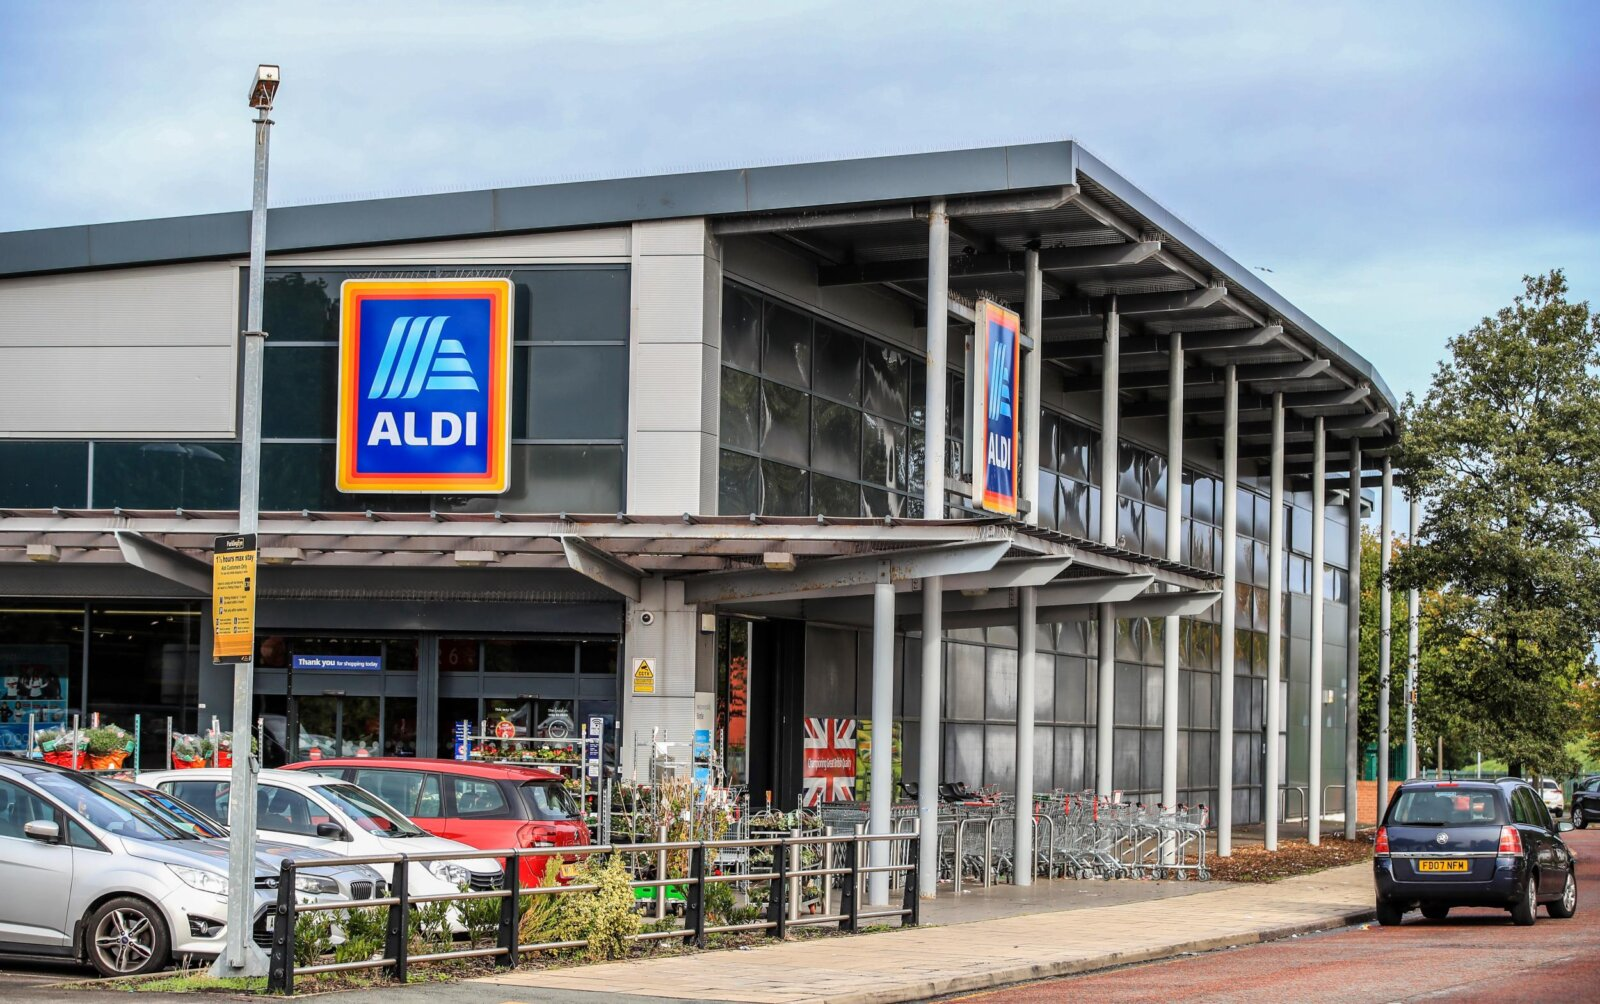 Aldi is currently hiring across Greater Manchester and you can earn over £10 an hour, The Manc